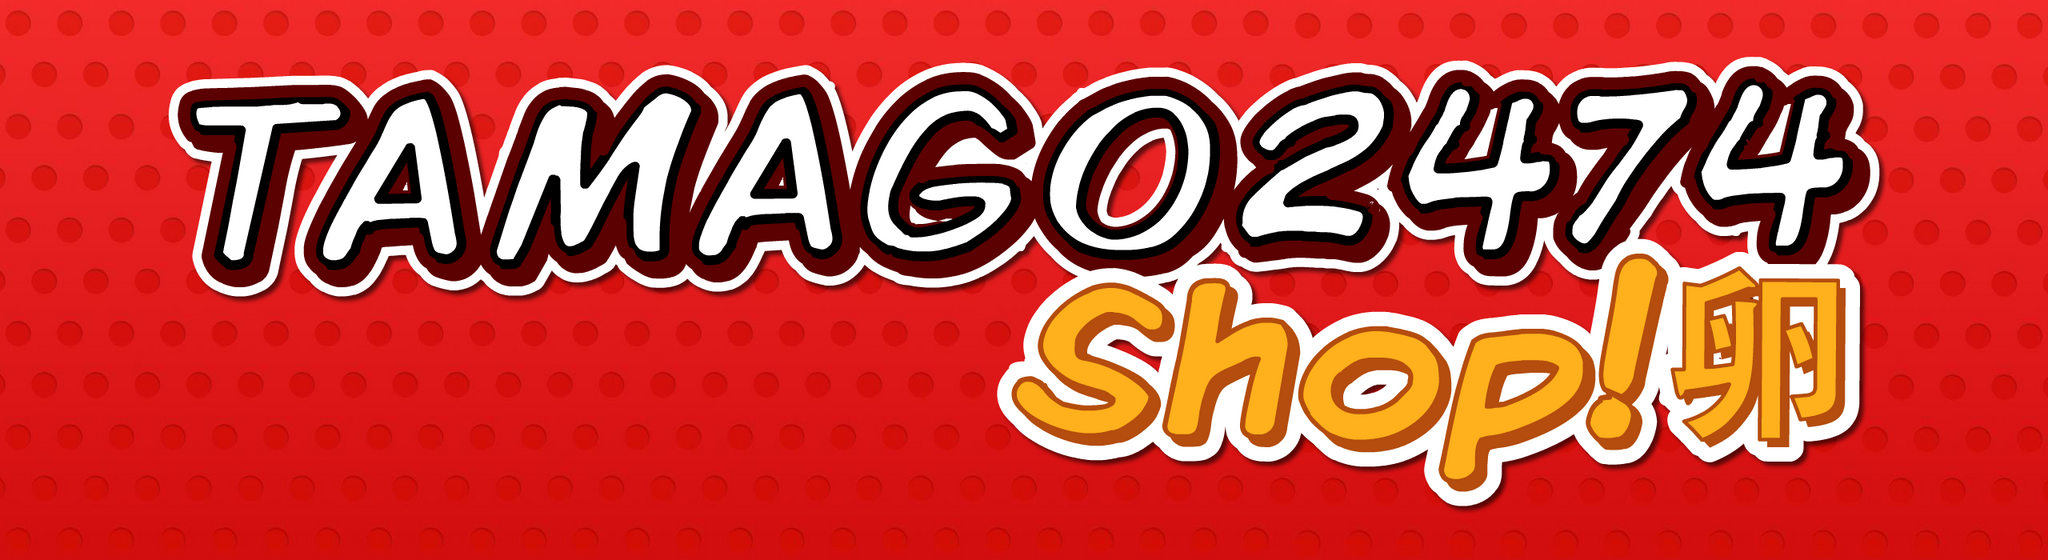 The official merch store for Tamago2474